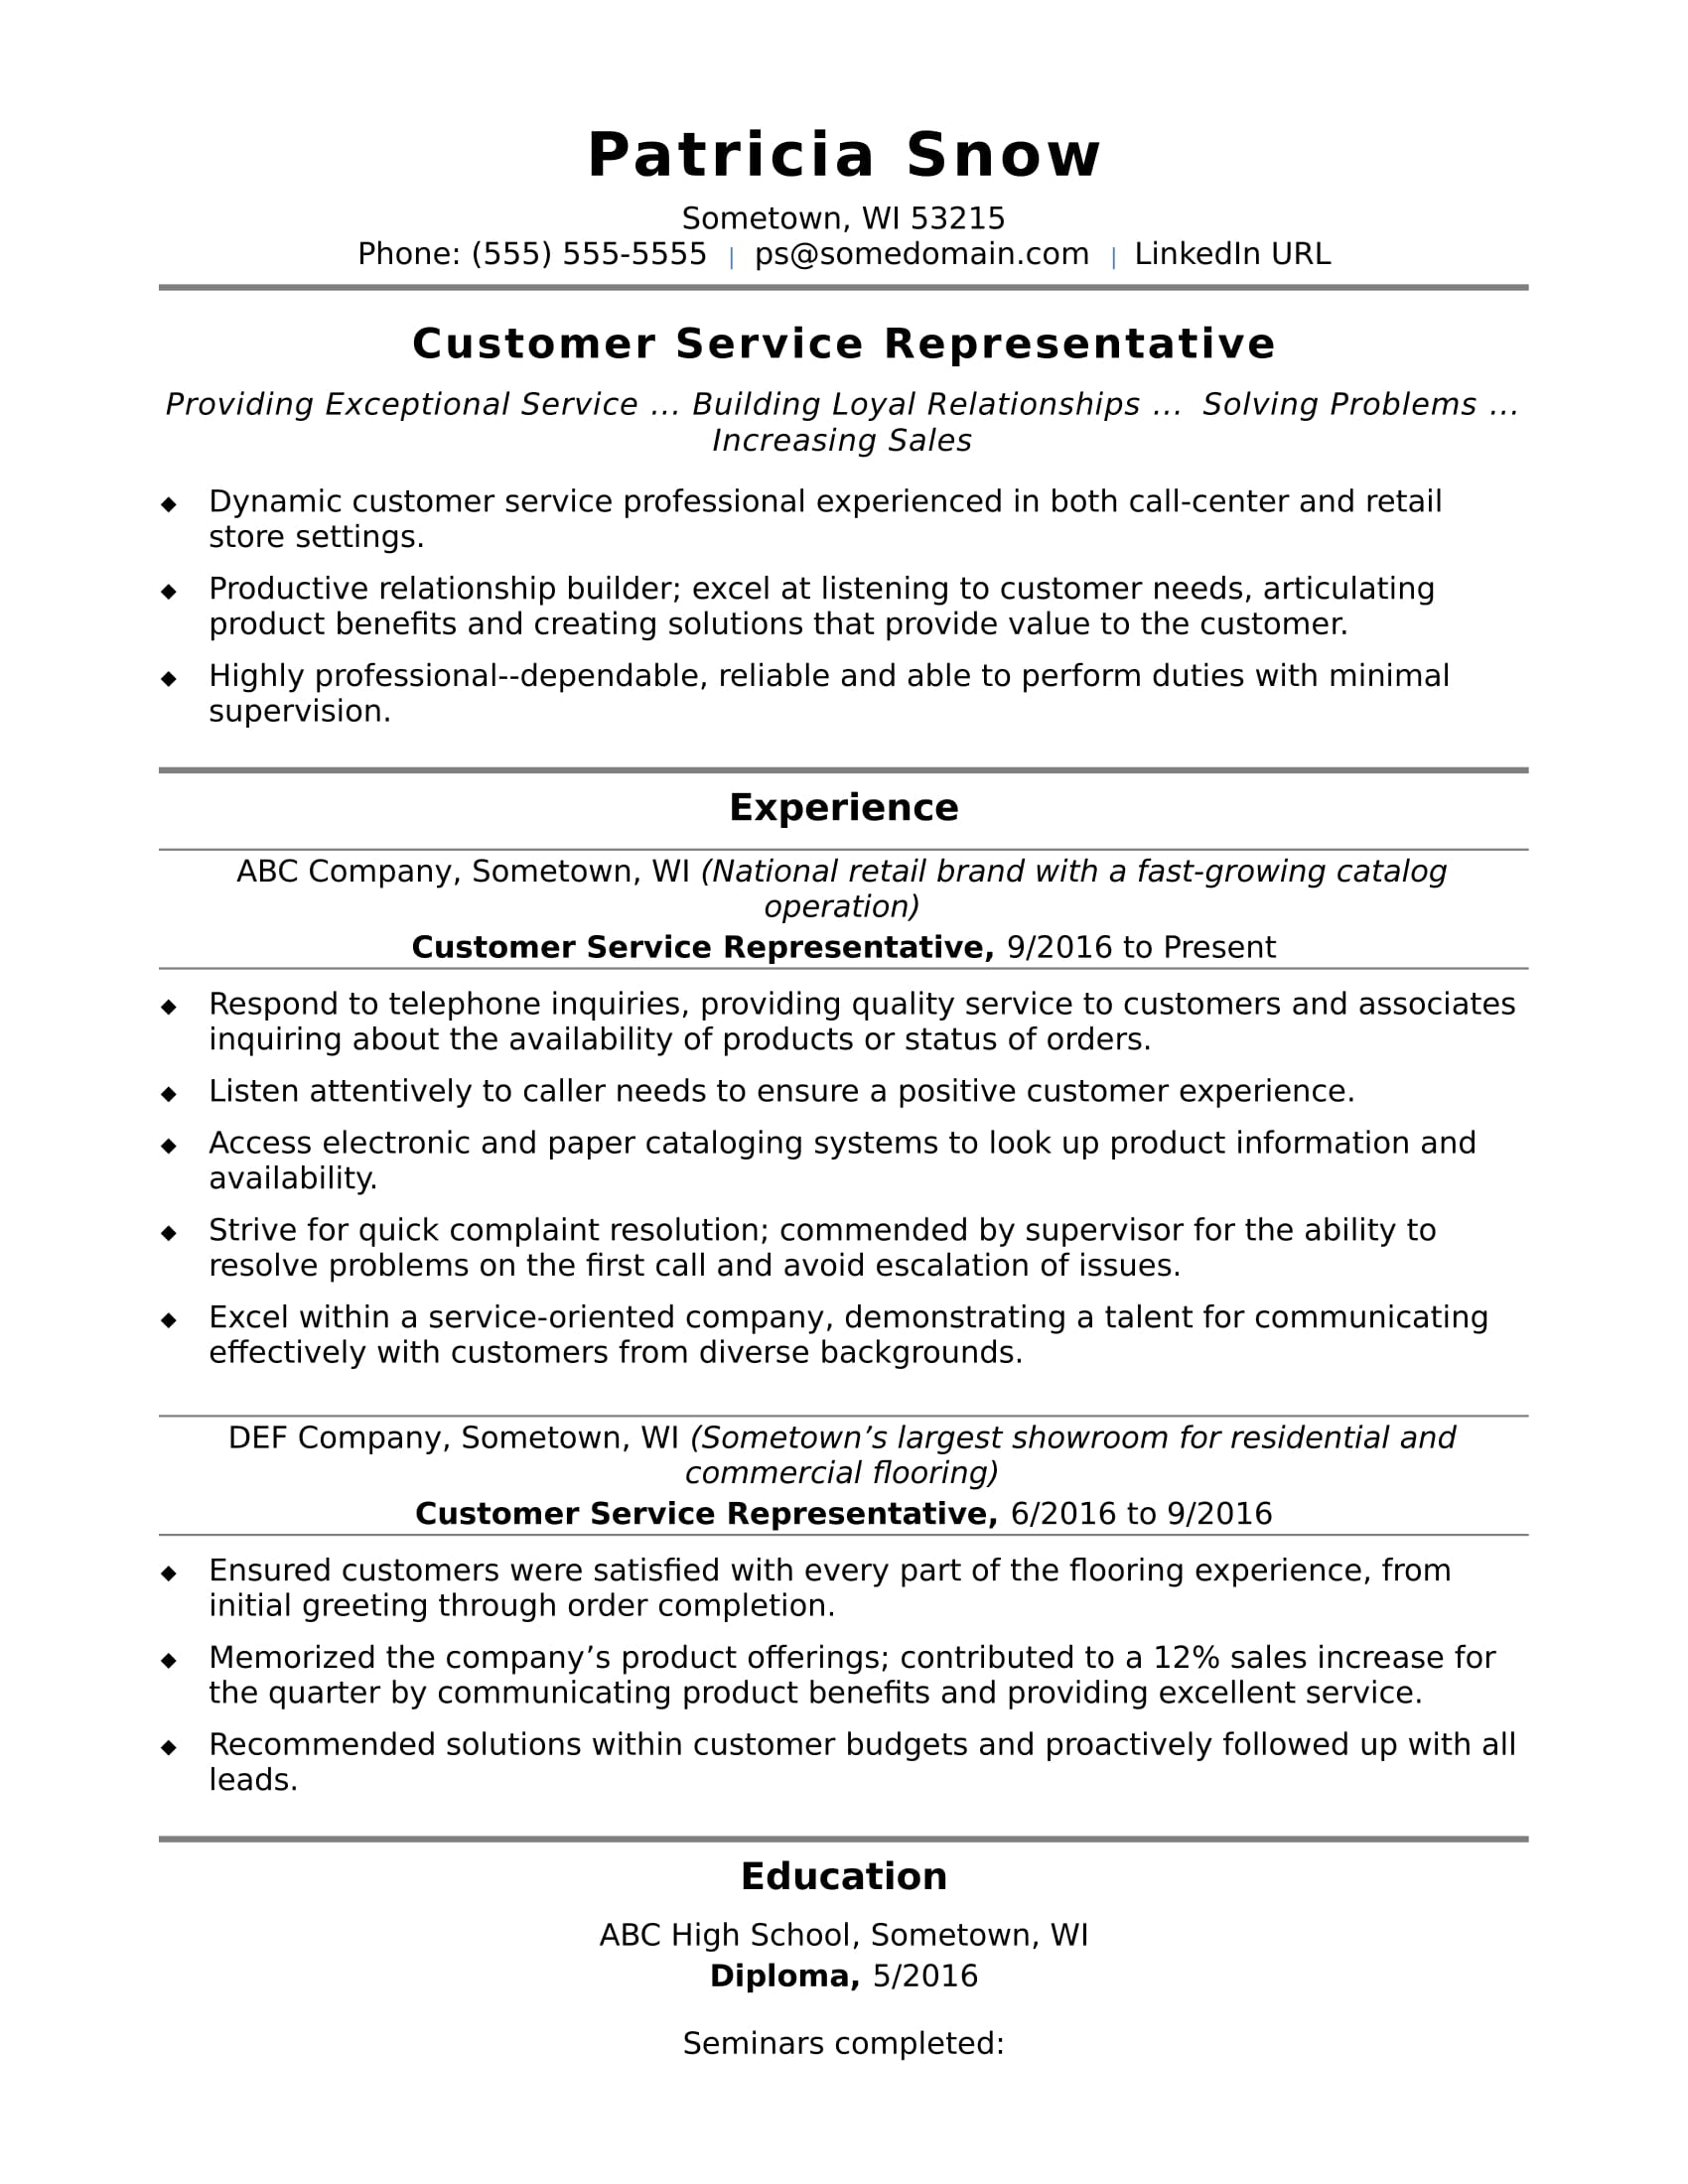 customer service representative resume sample monster samples free entry level words with Resume Customer Service Resume Samples Free